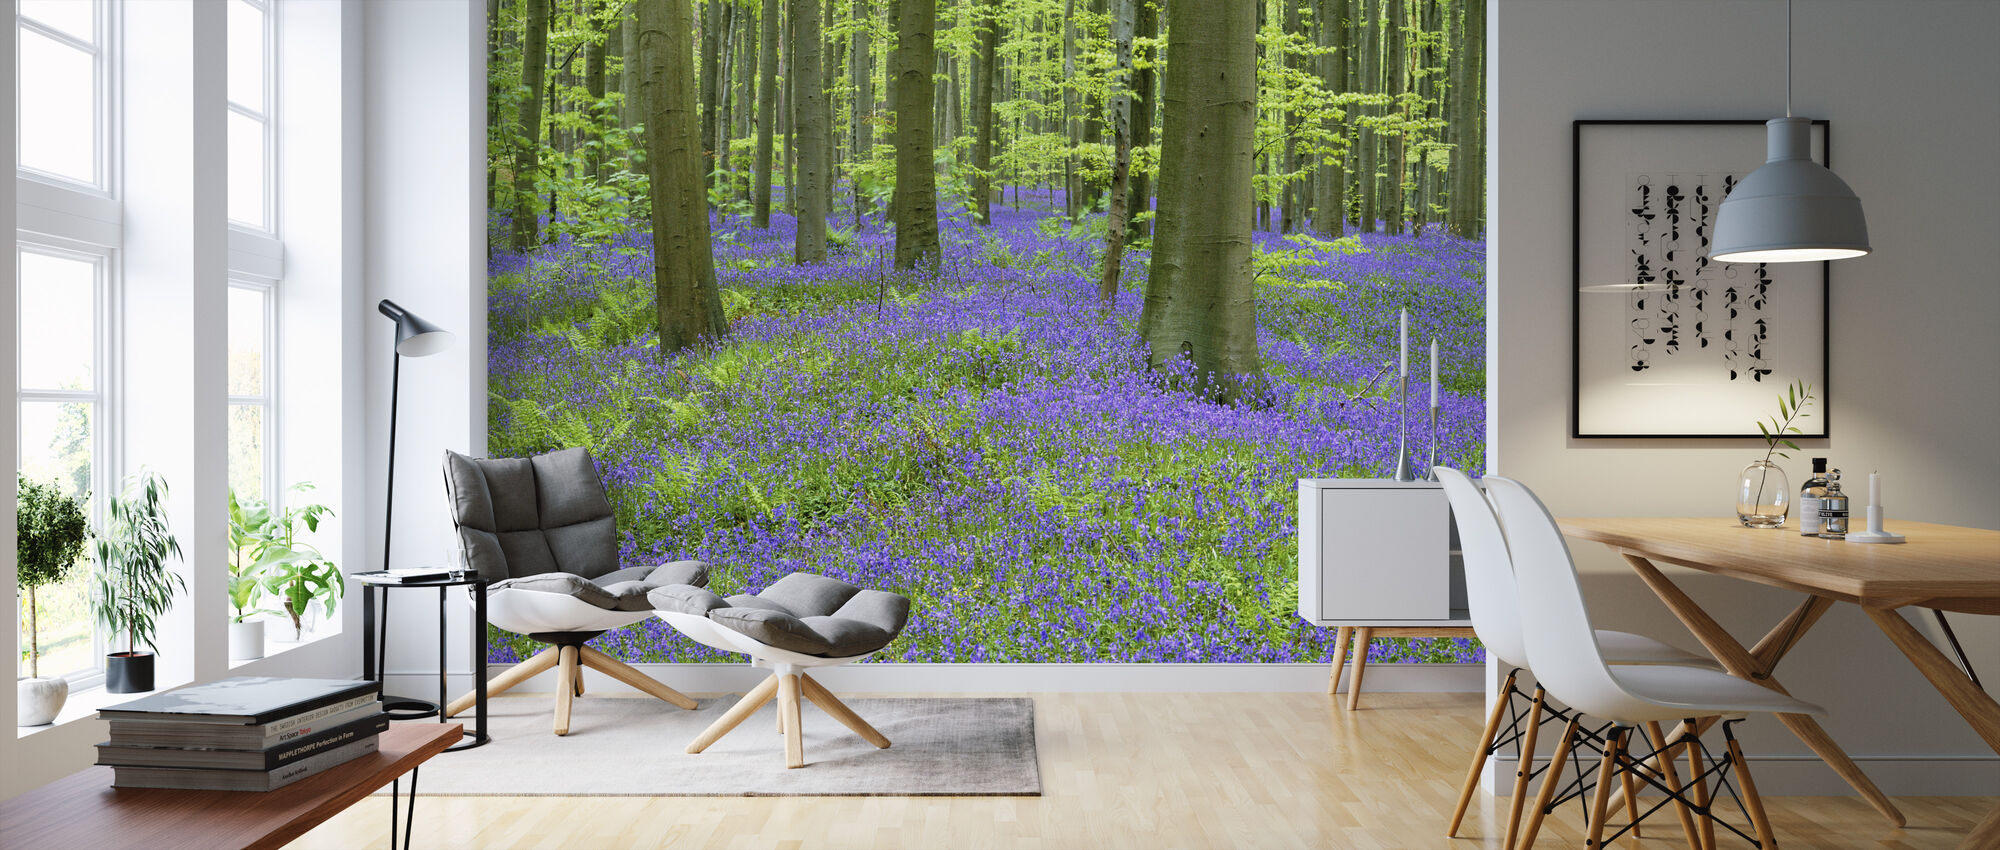 Bluebells Wallpaper - Wallpaper - Living Room